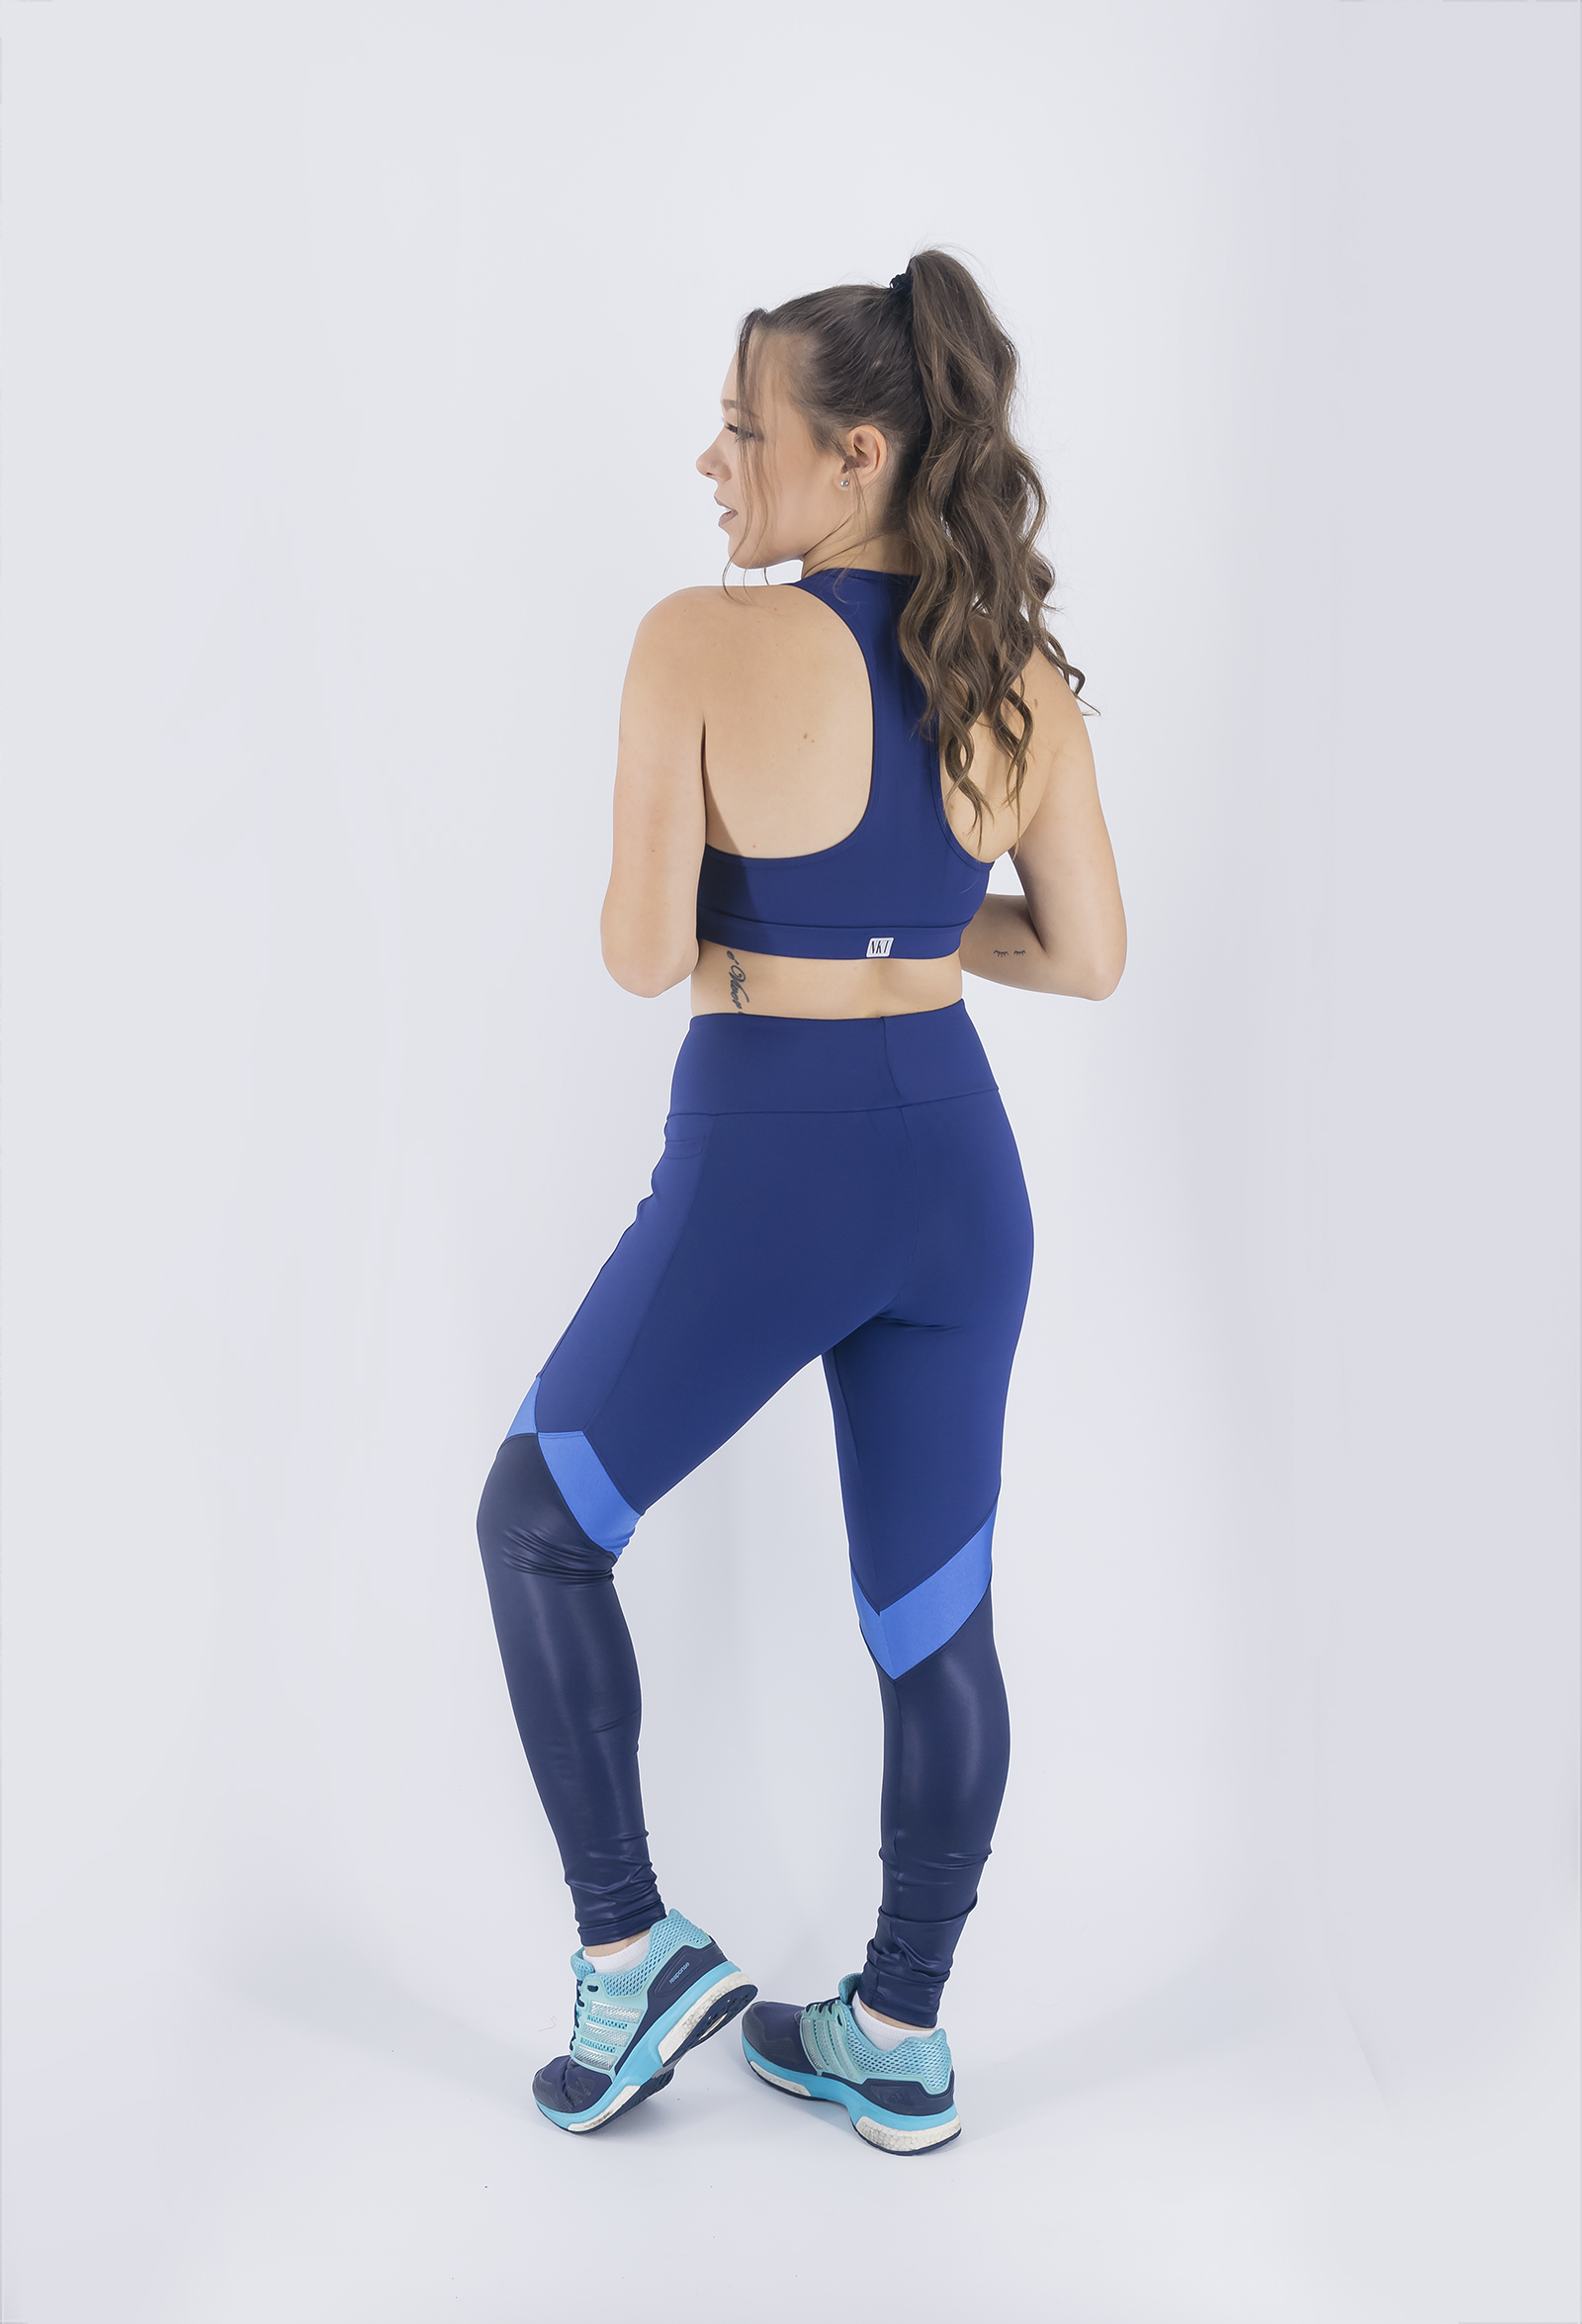 Legging Set Marinho, Coleção Just For You - NKT Fitwear Moda Fitness